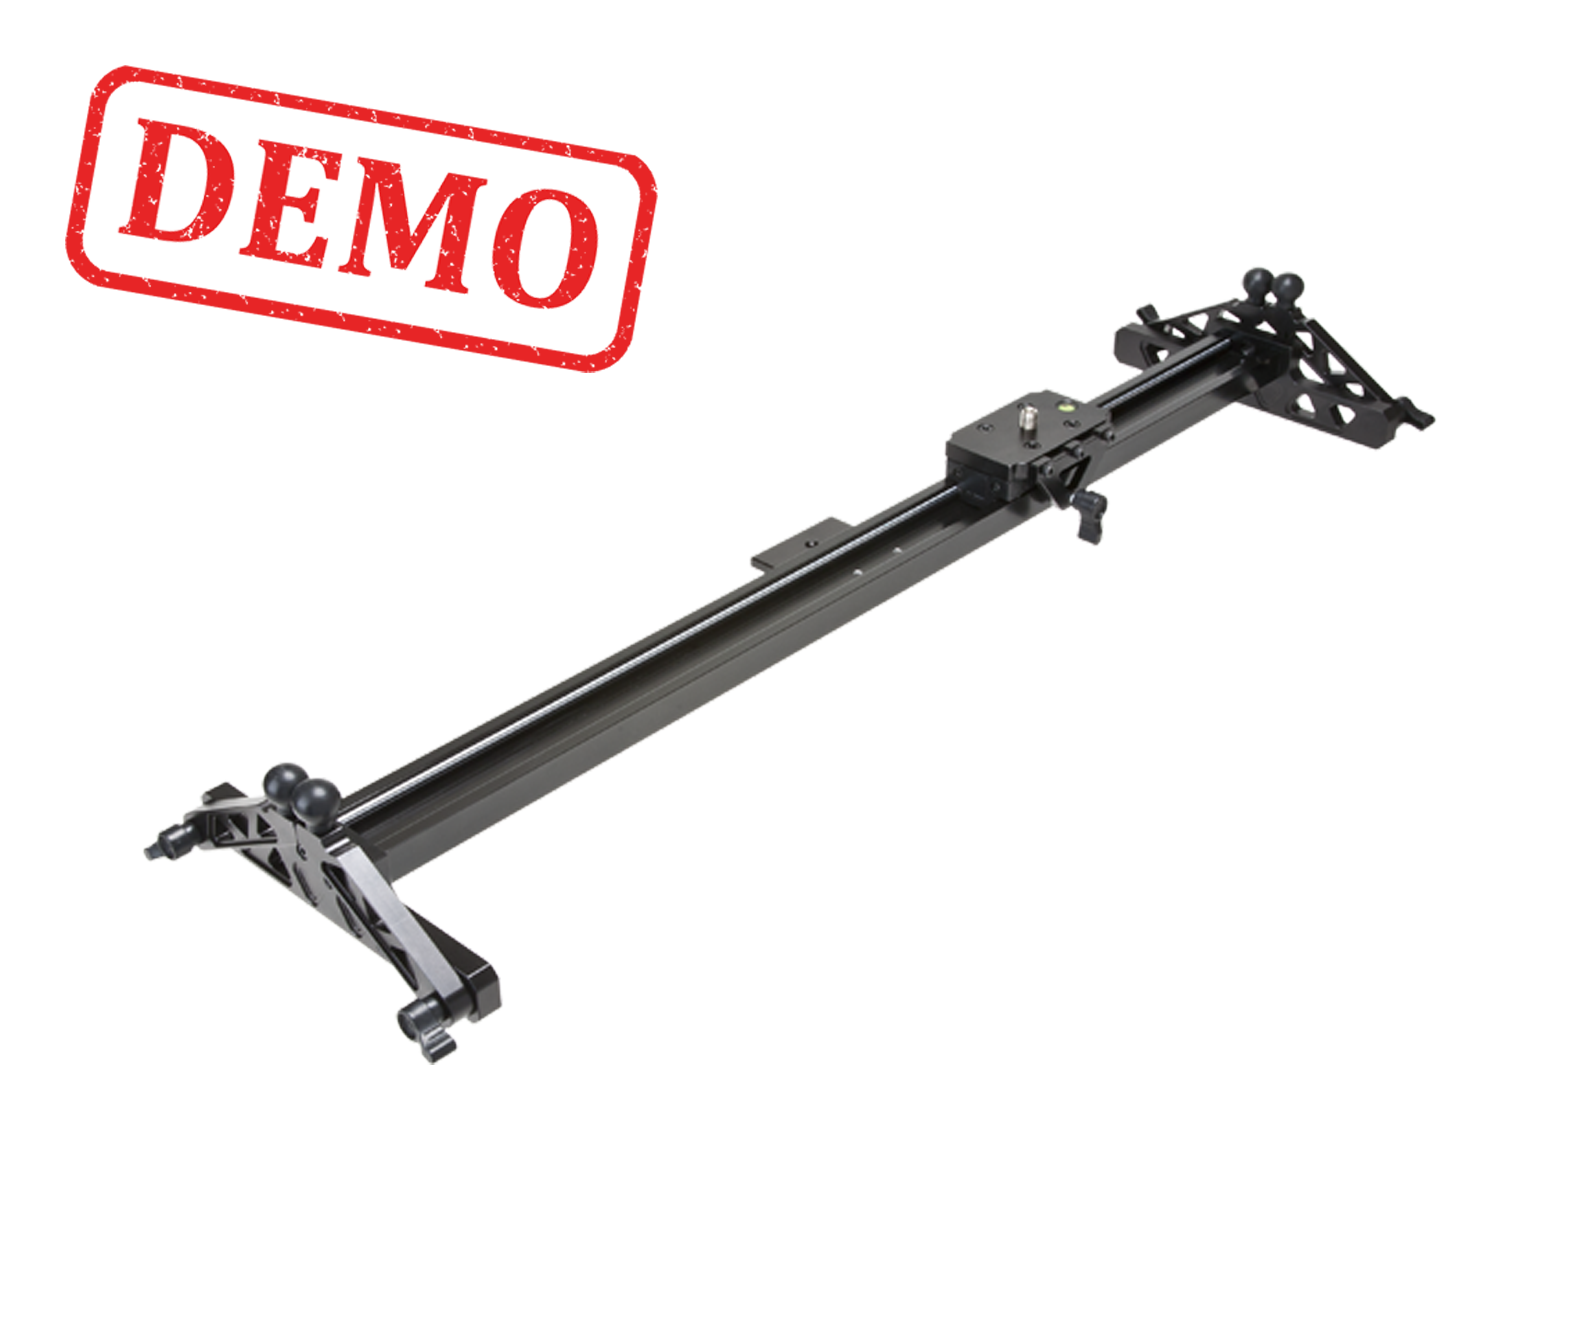 DEMO - F&V DSLR / CAMCORDER TRACK DOLLY SLIDER S80 with ROLLER BEARING